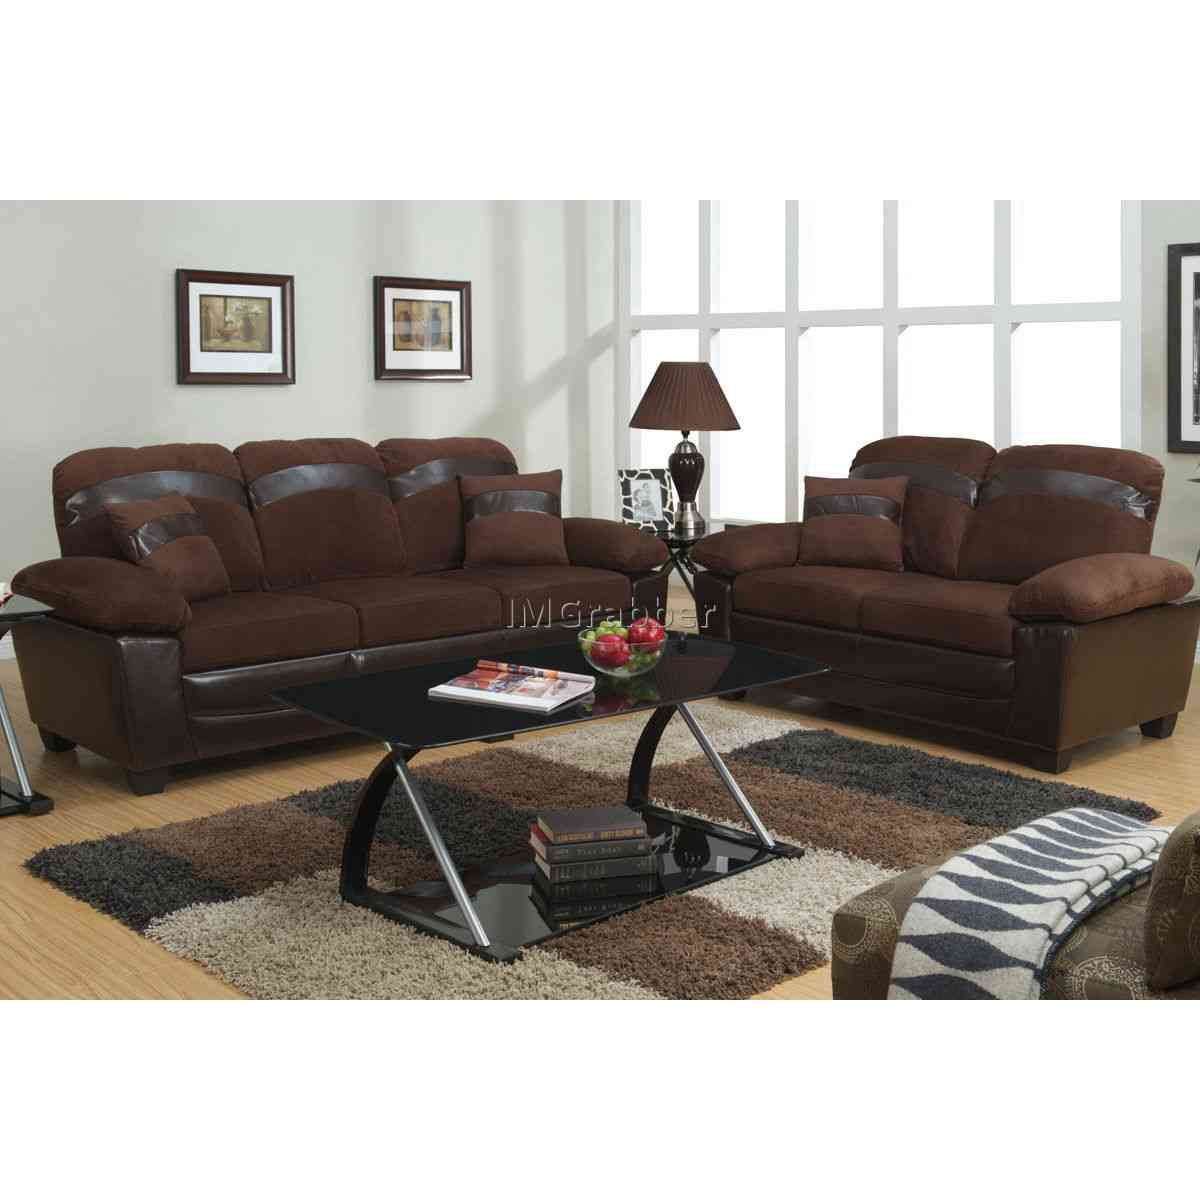 Marvelous Design Of The Living Room Areas With Brown Leather Sofa Added With Brown Rugs As The Apartment Size Furniture